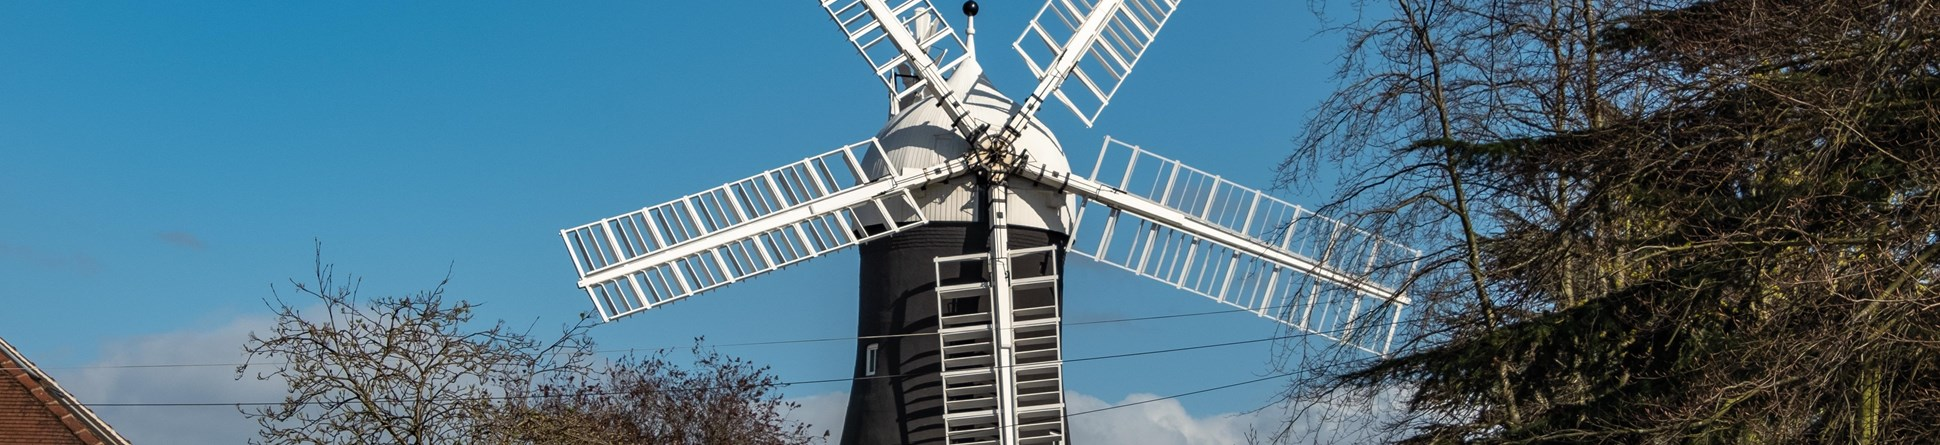 Image of Holgate Windmill, York, a tower mill which has five sails, a cap and fantail.